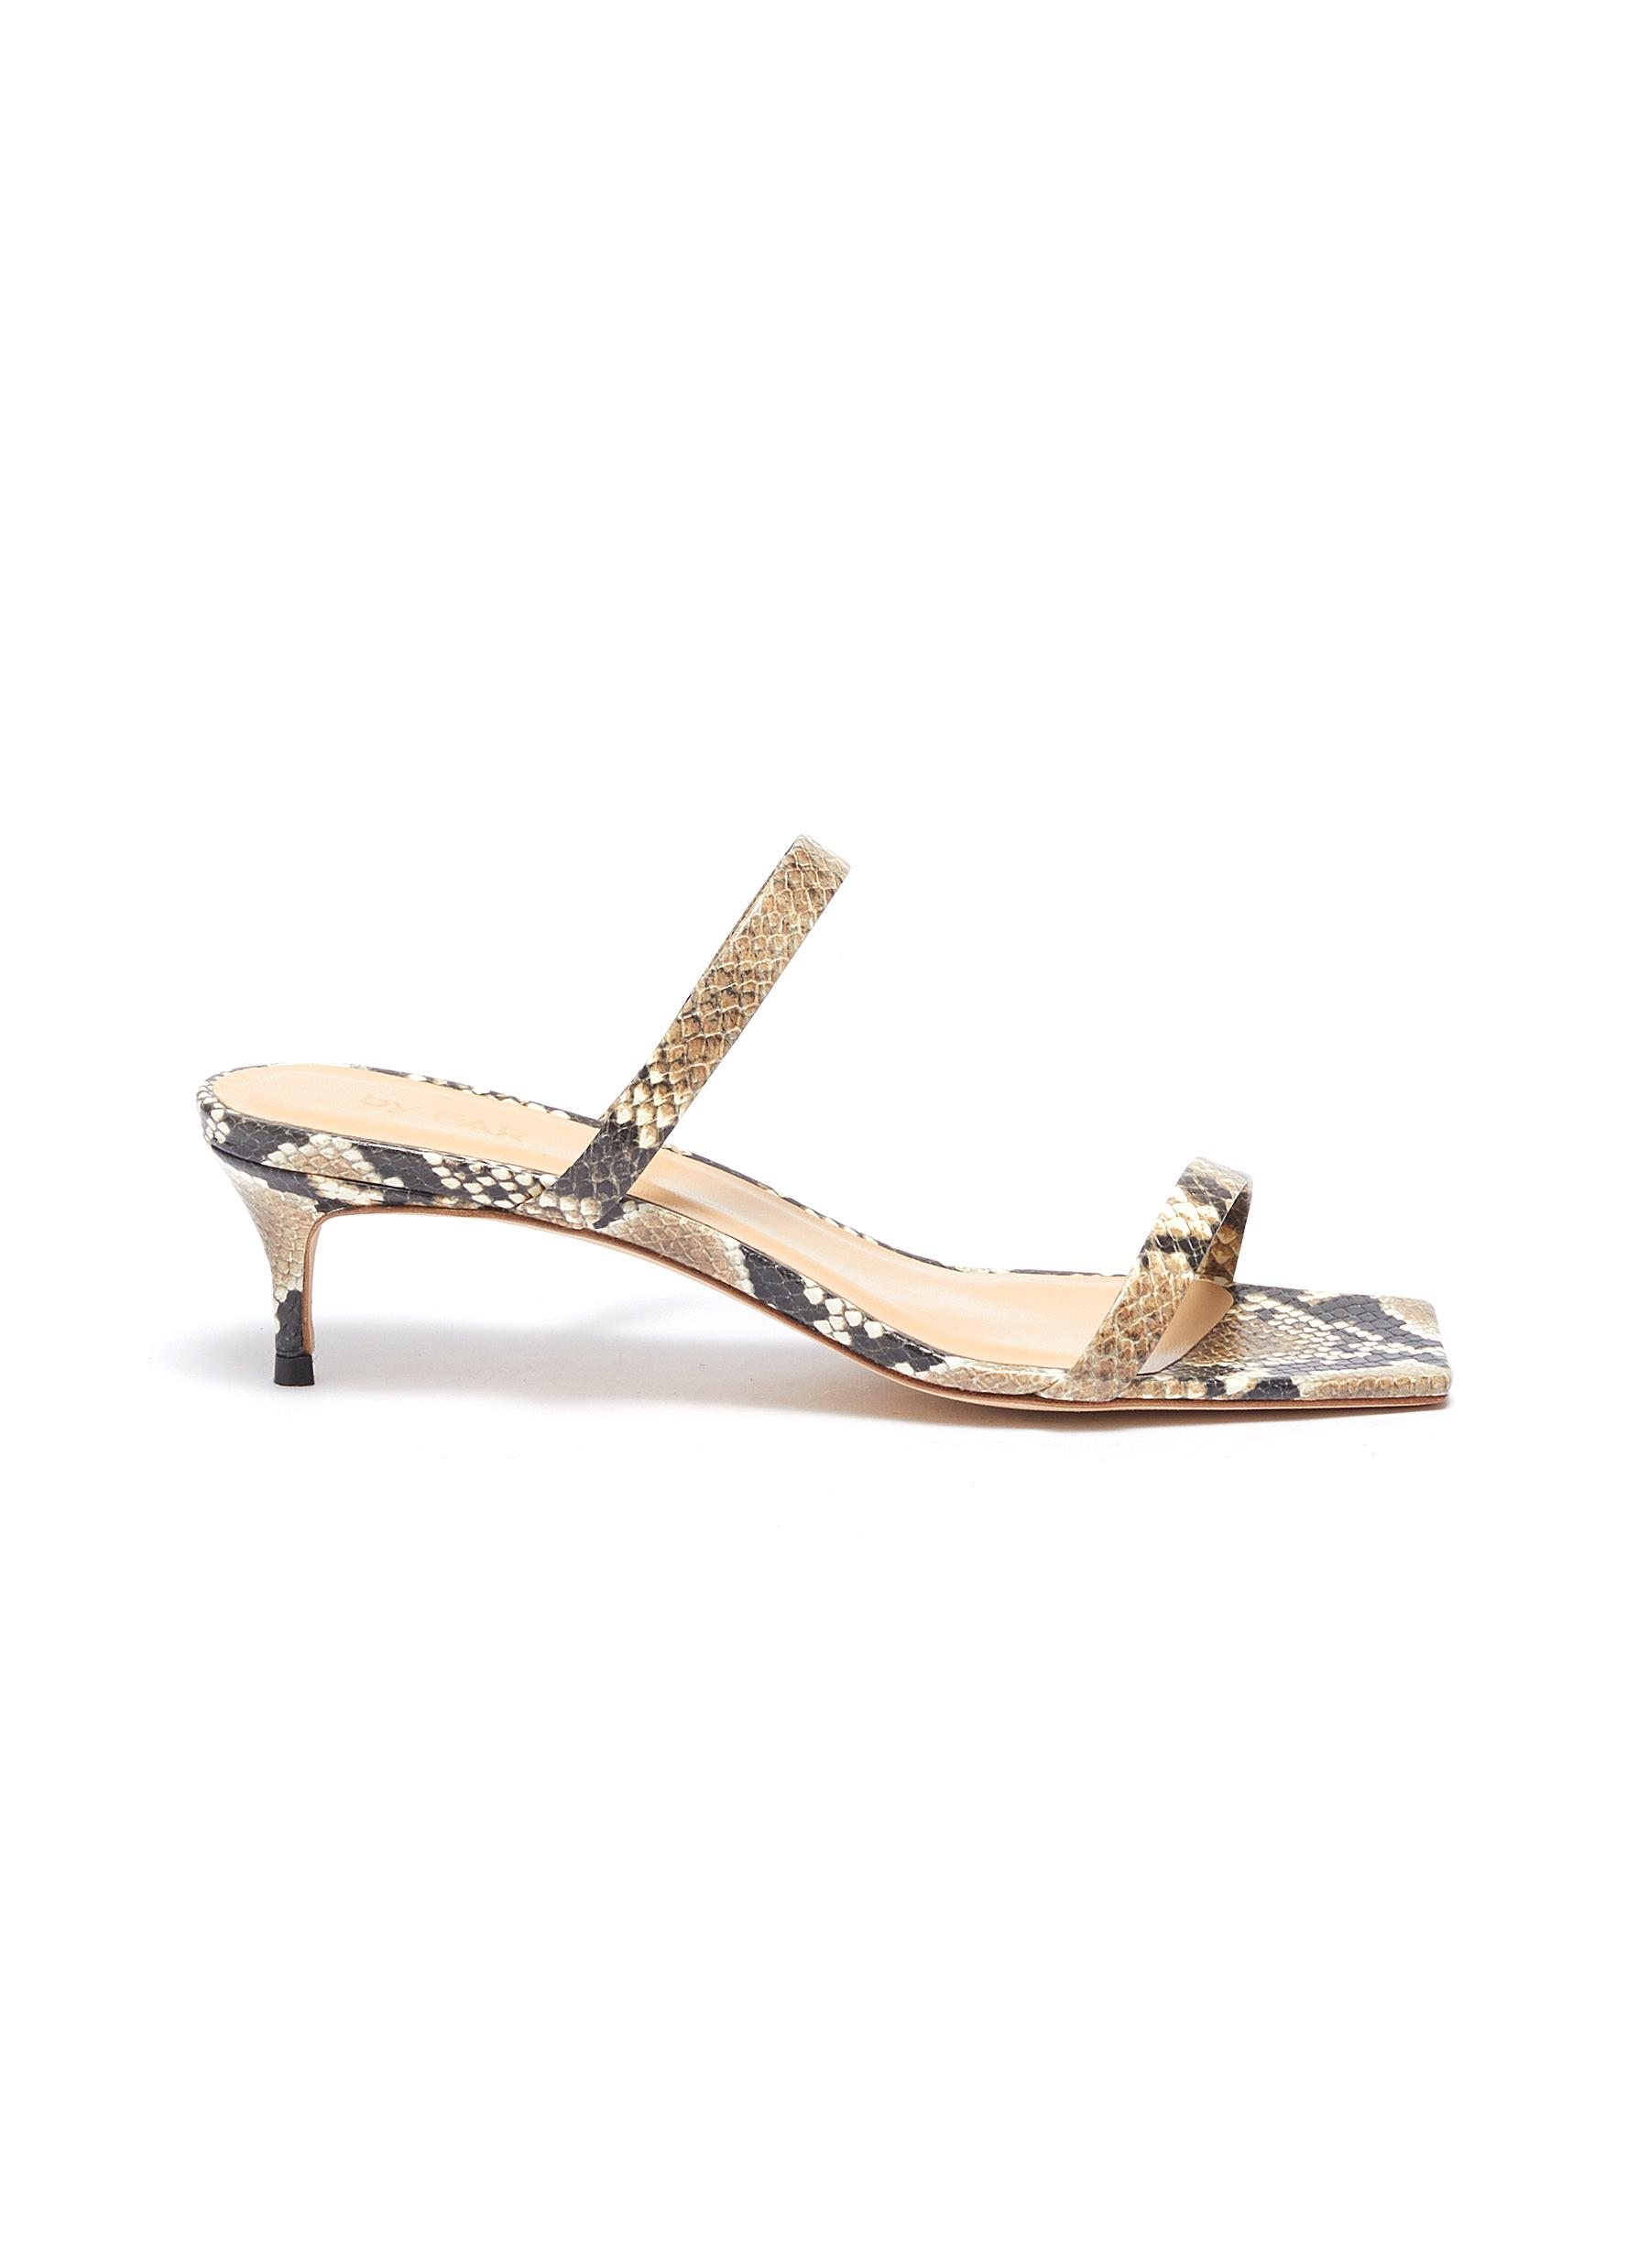 Thalia snake embossed leather sandals by By Far